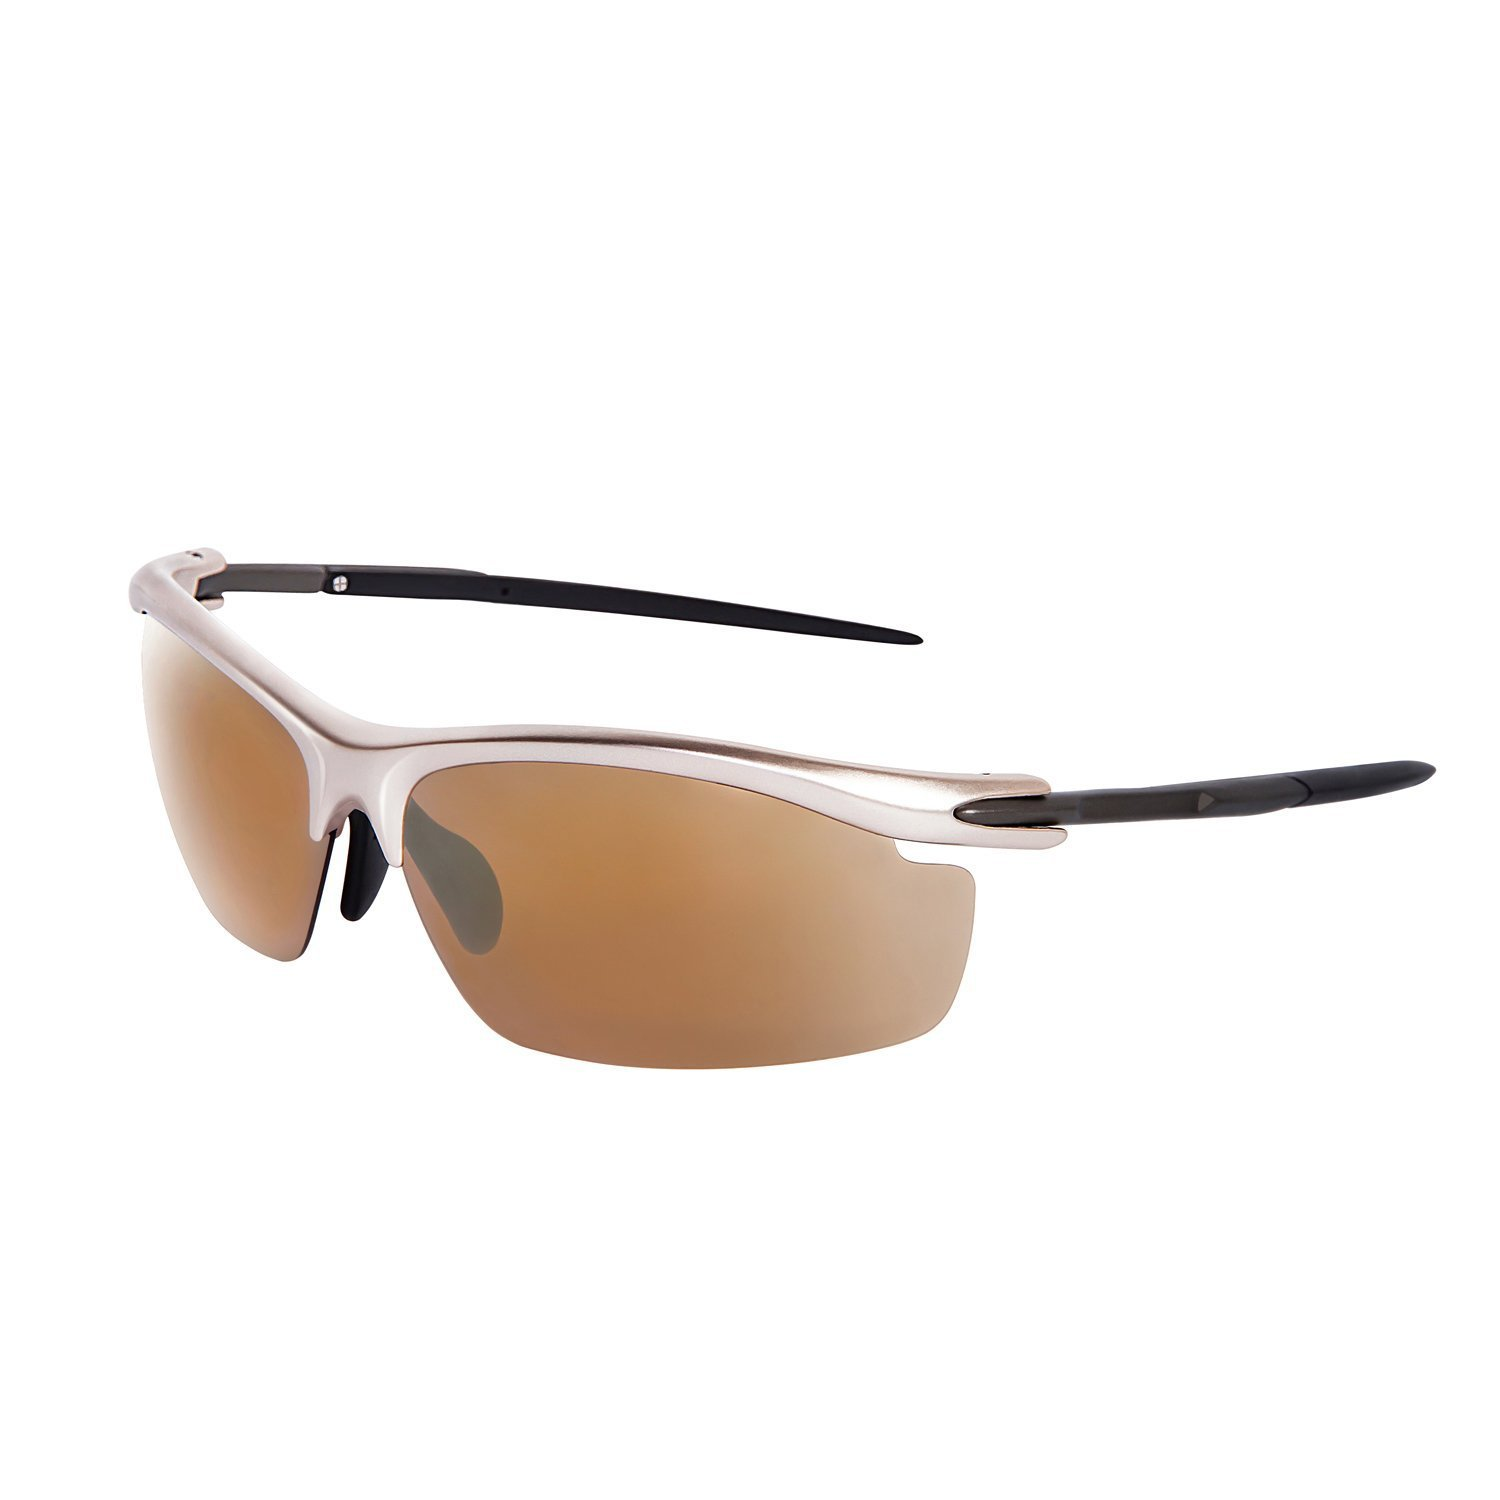 Unisex Polarized Sports Sunglasses for Men Women Baseball Fishing Golf Running Cycling Driving Softball Hiking TR90 Superlight Unbreakable Frame by Relxtrip